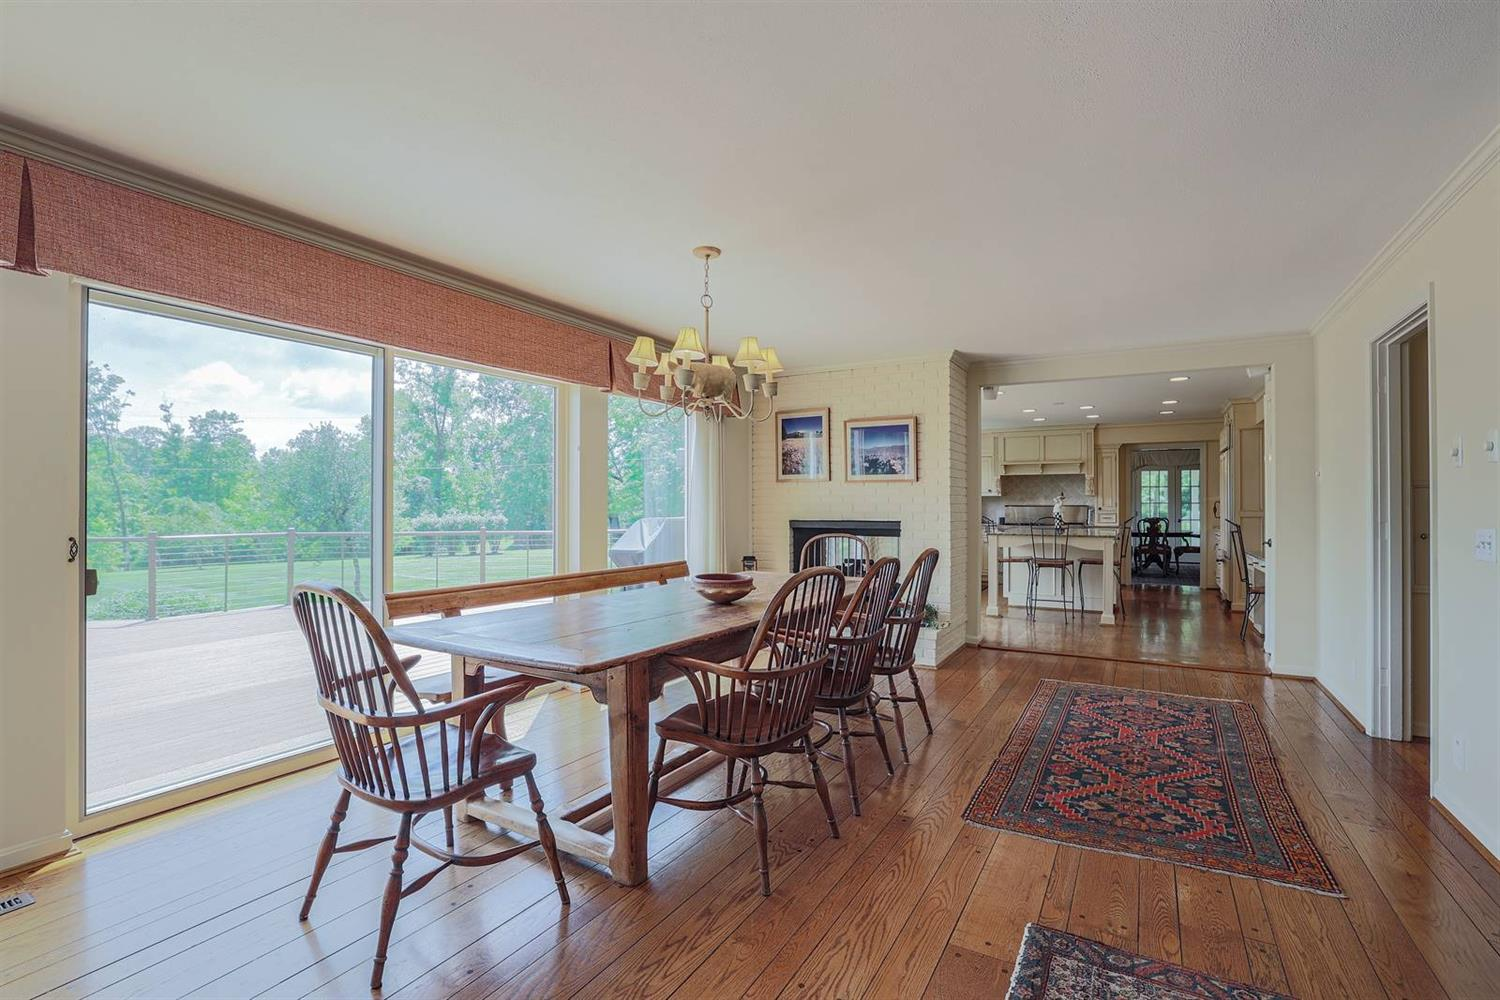 8000 Blome Road Property Photo 19